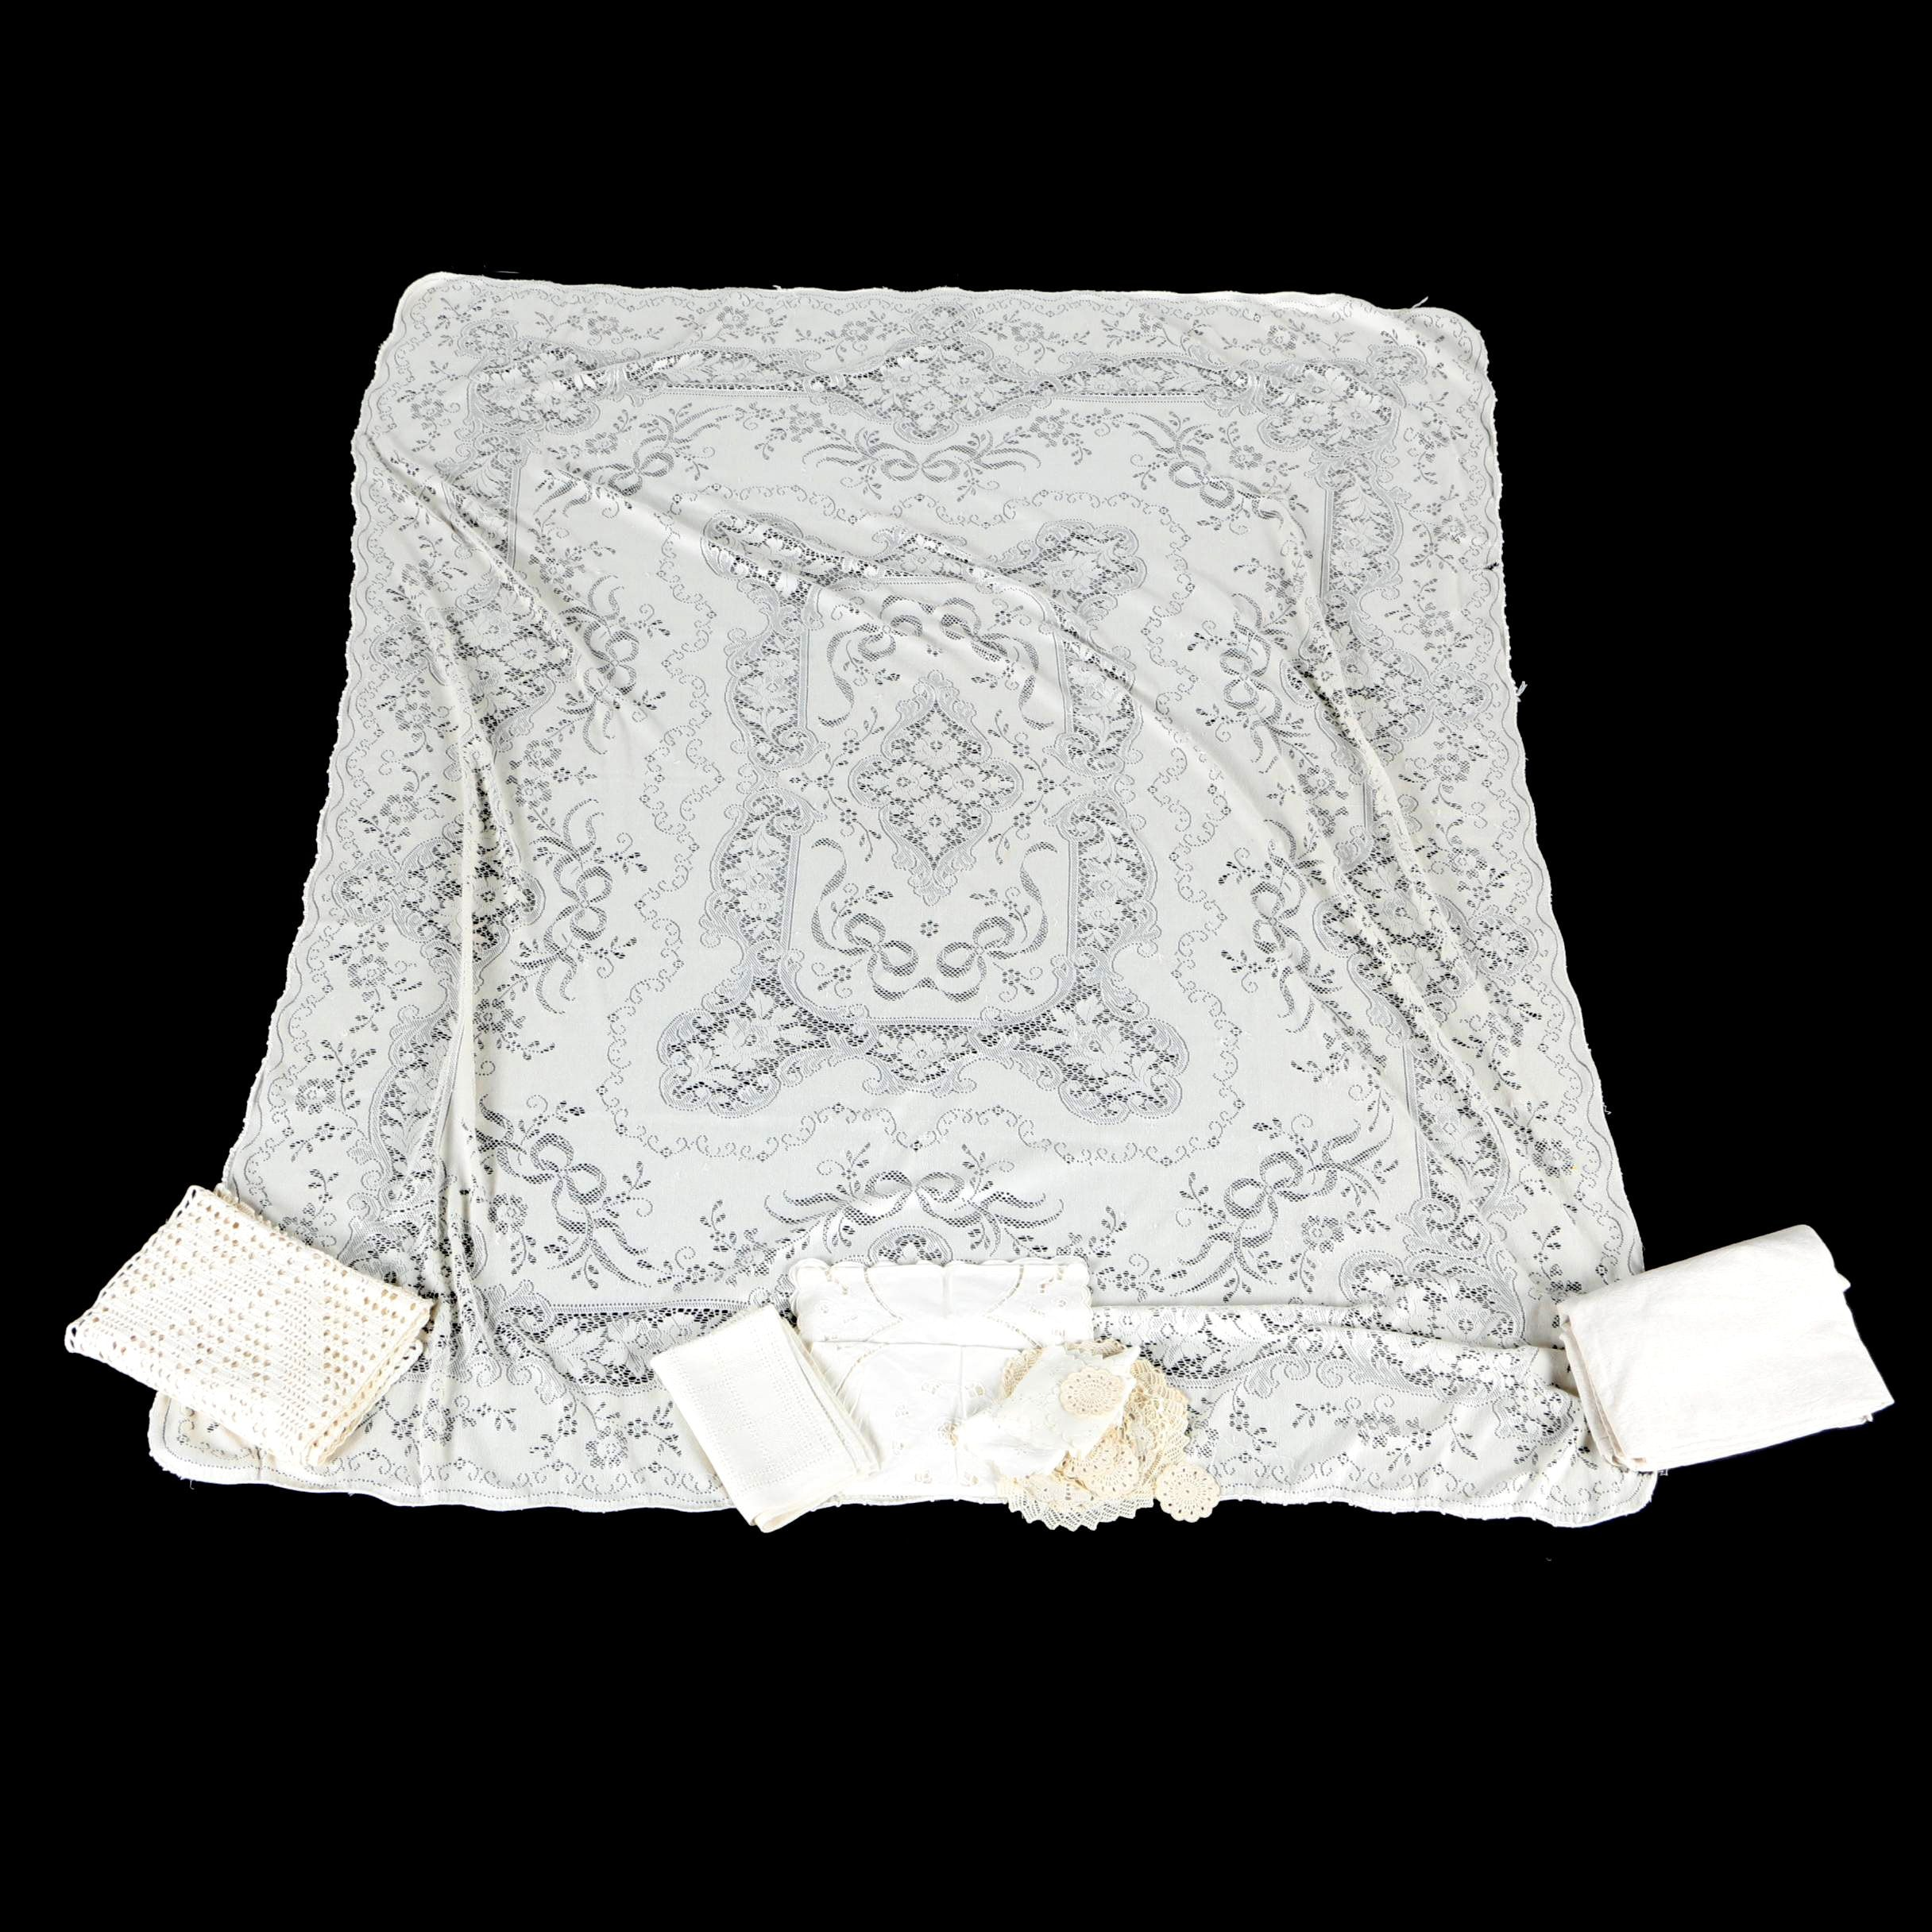 Vintage Crochet and Lace Table Linens